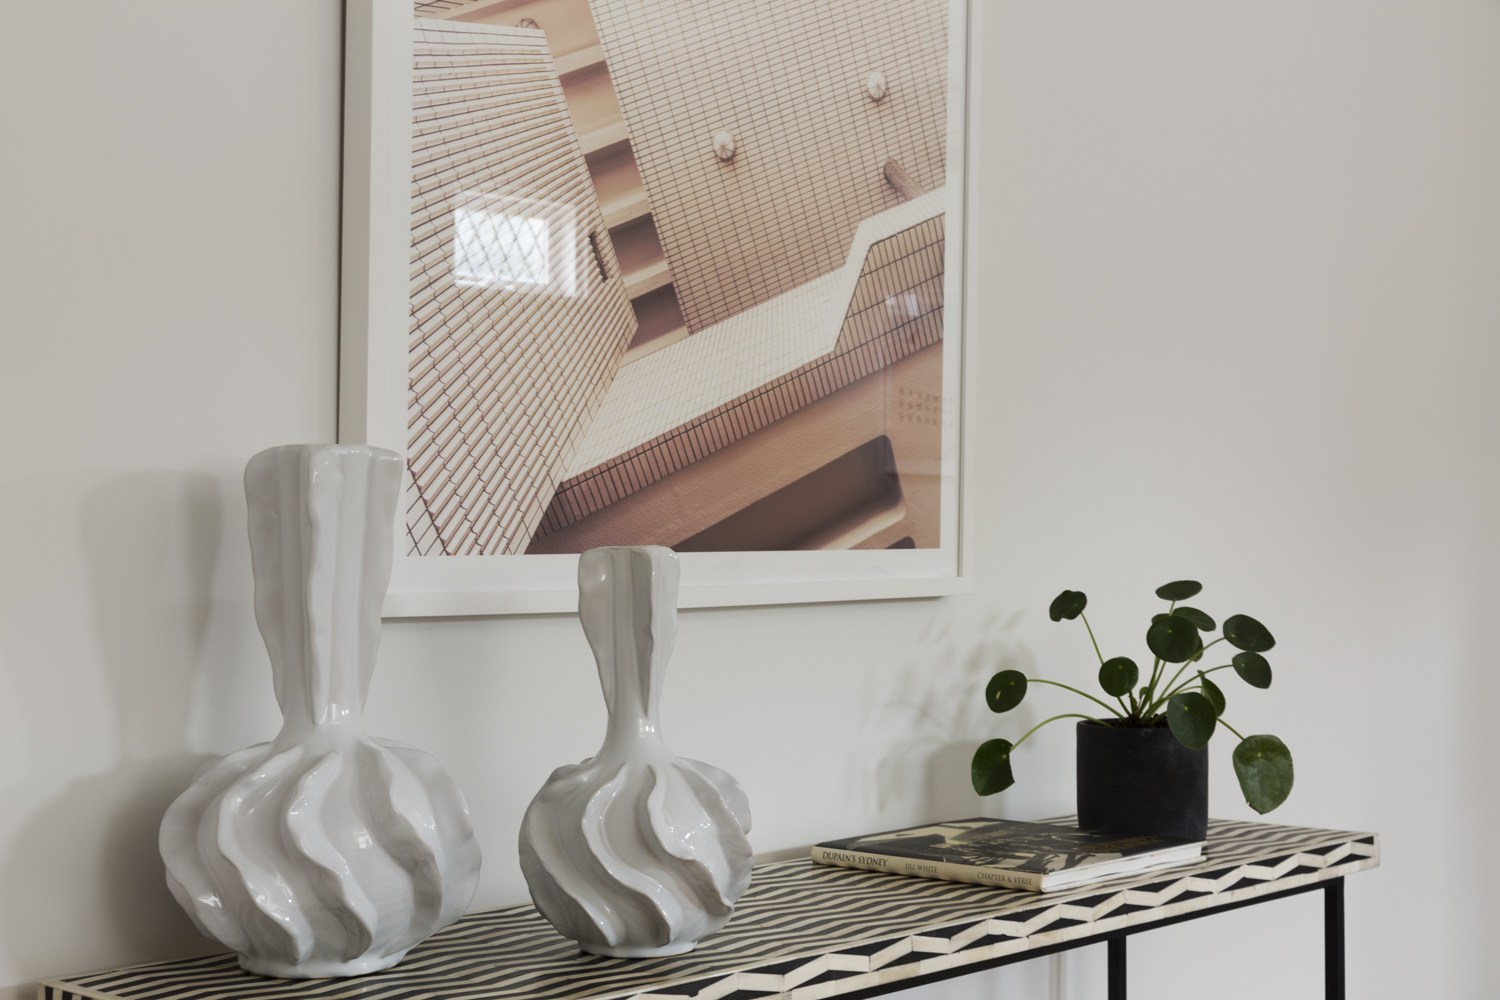 Landing and entry console selected by Interior designer Meredith Lee. Stylist Meredith Lee. Interior decorator Meredith Lee